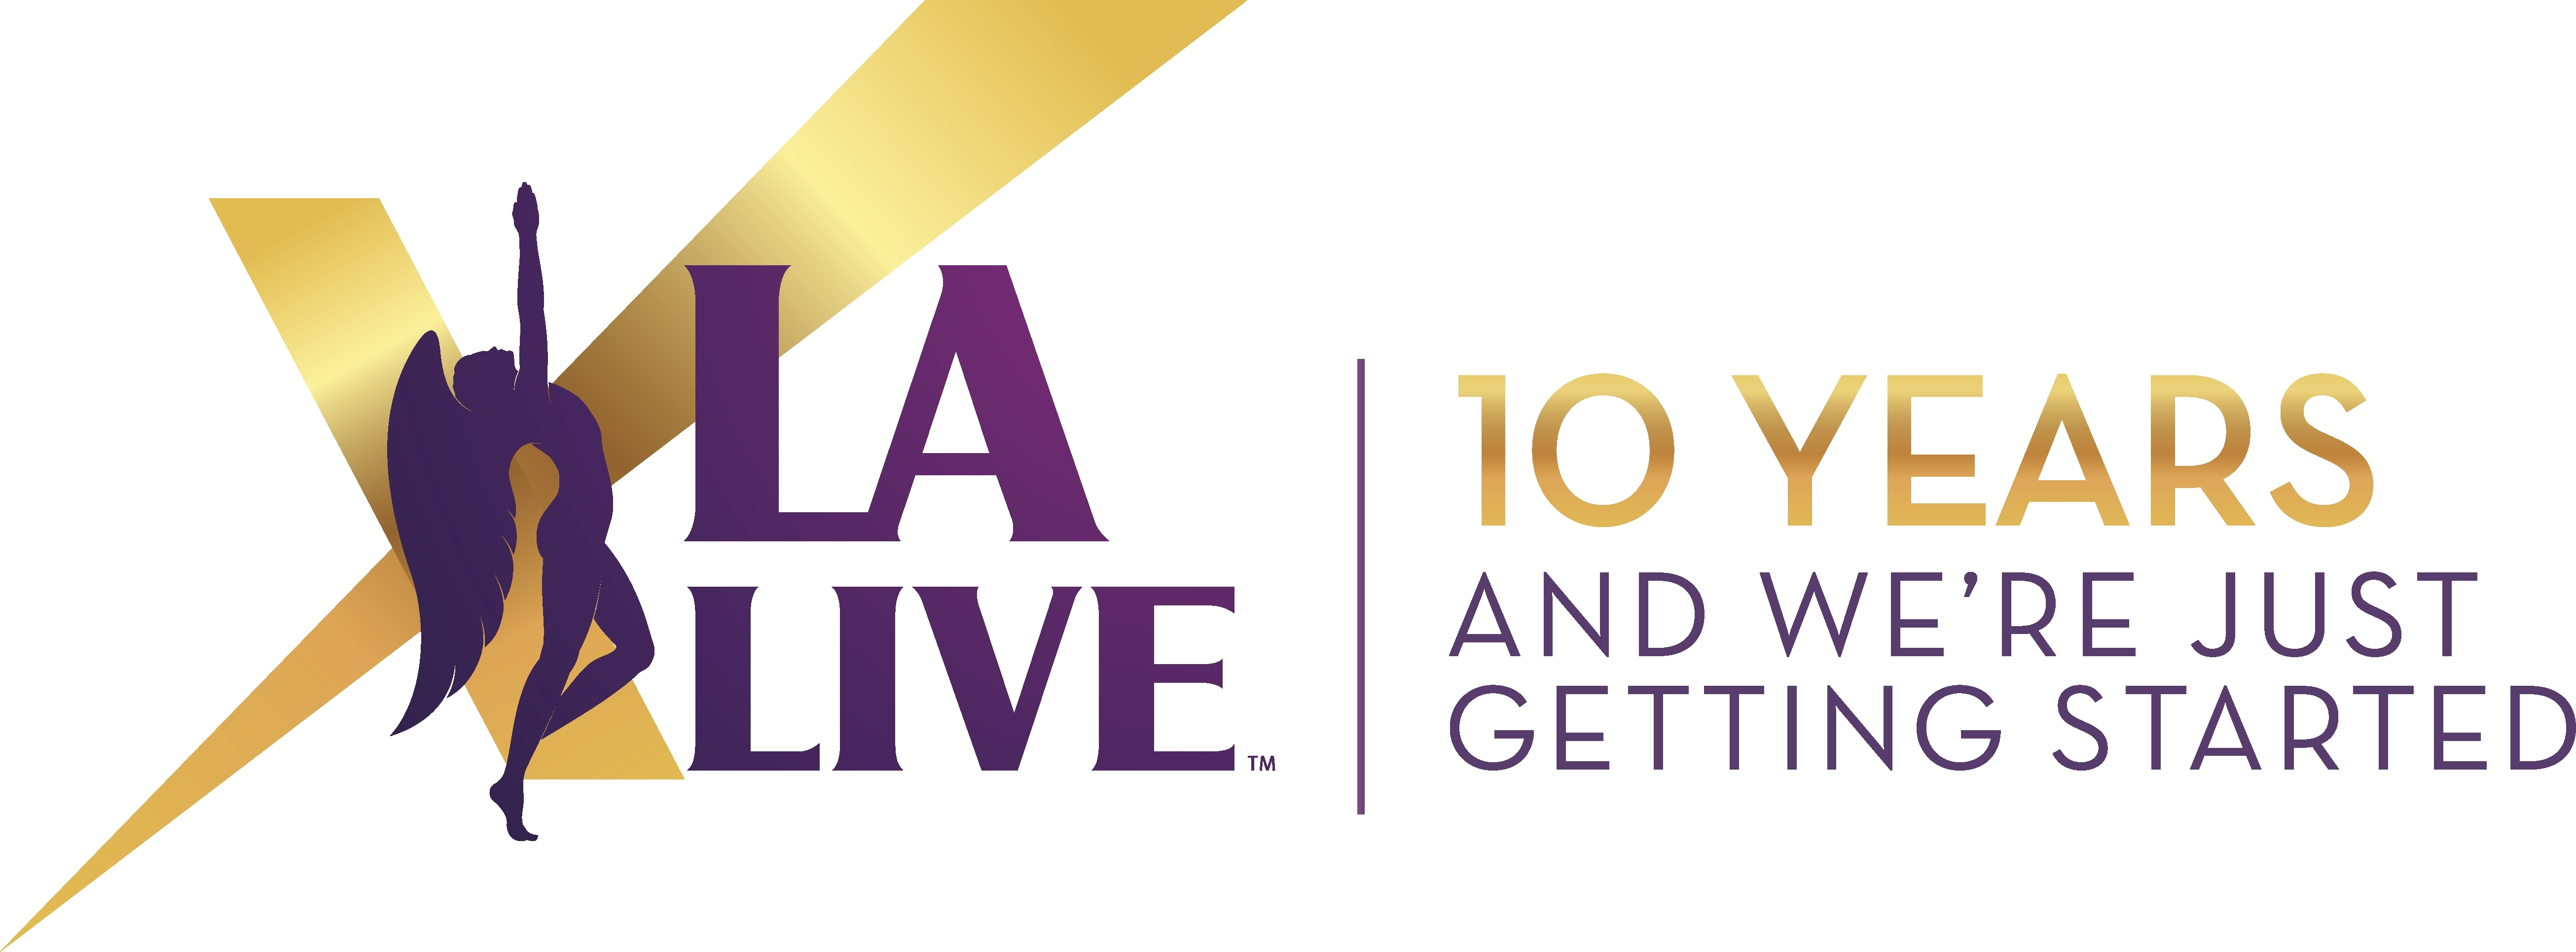 L.A. LIVE Celebrates Its 10th Anniversary on June 8, 2018 | Business ...